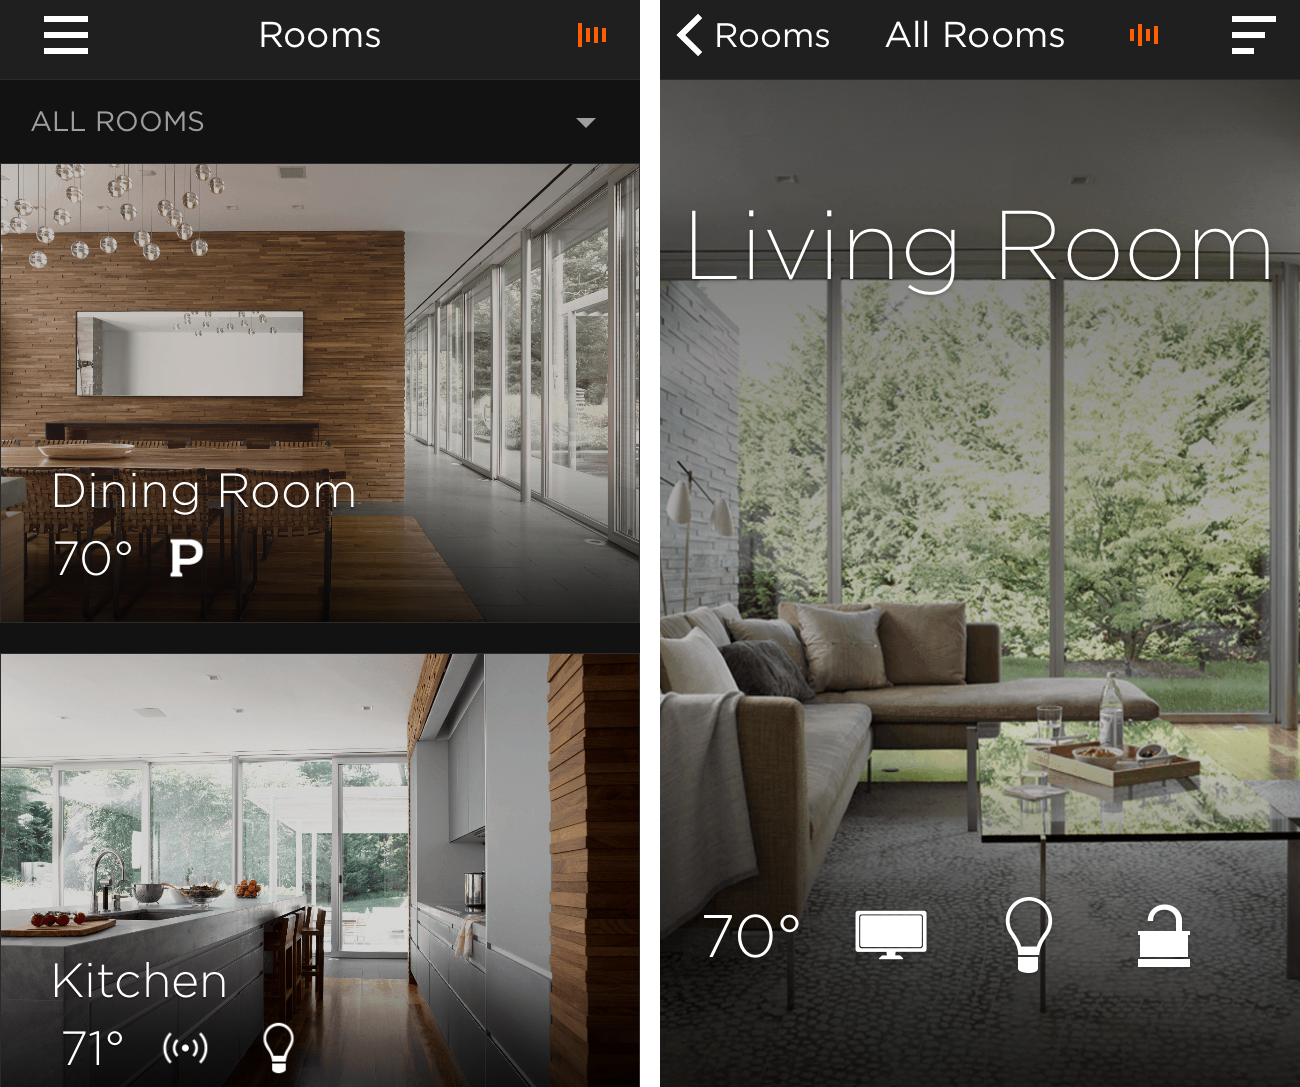 With custom photos, rooms layout is absolutely gorgeous.